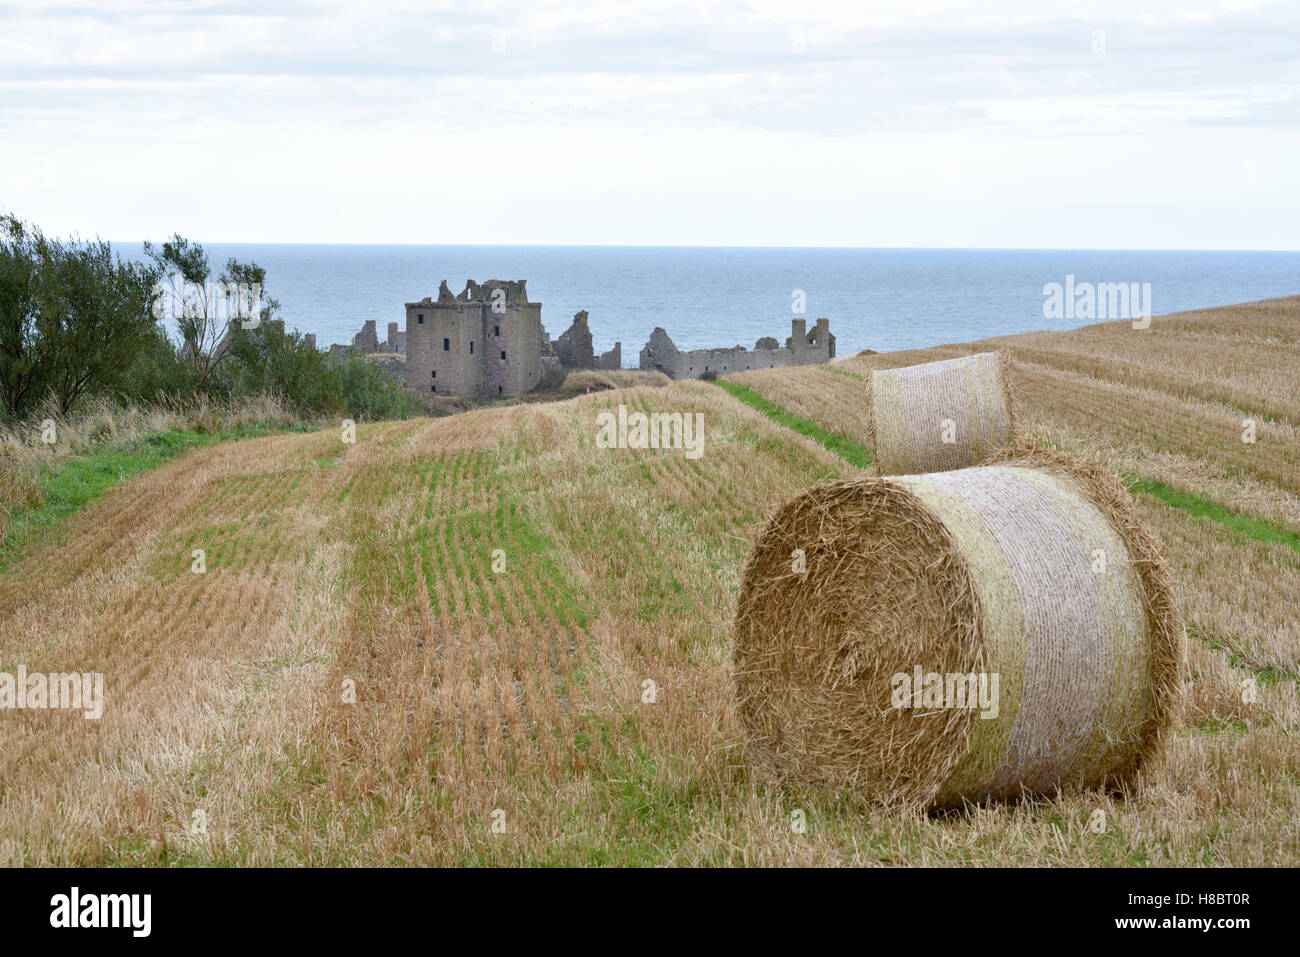 Dunnottar Castle From A Distance - Stock Image